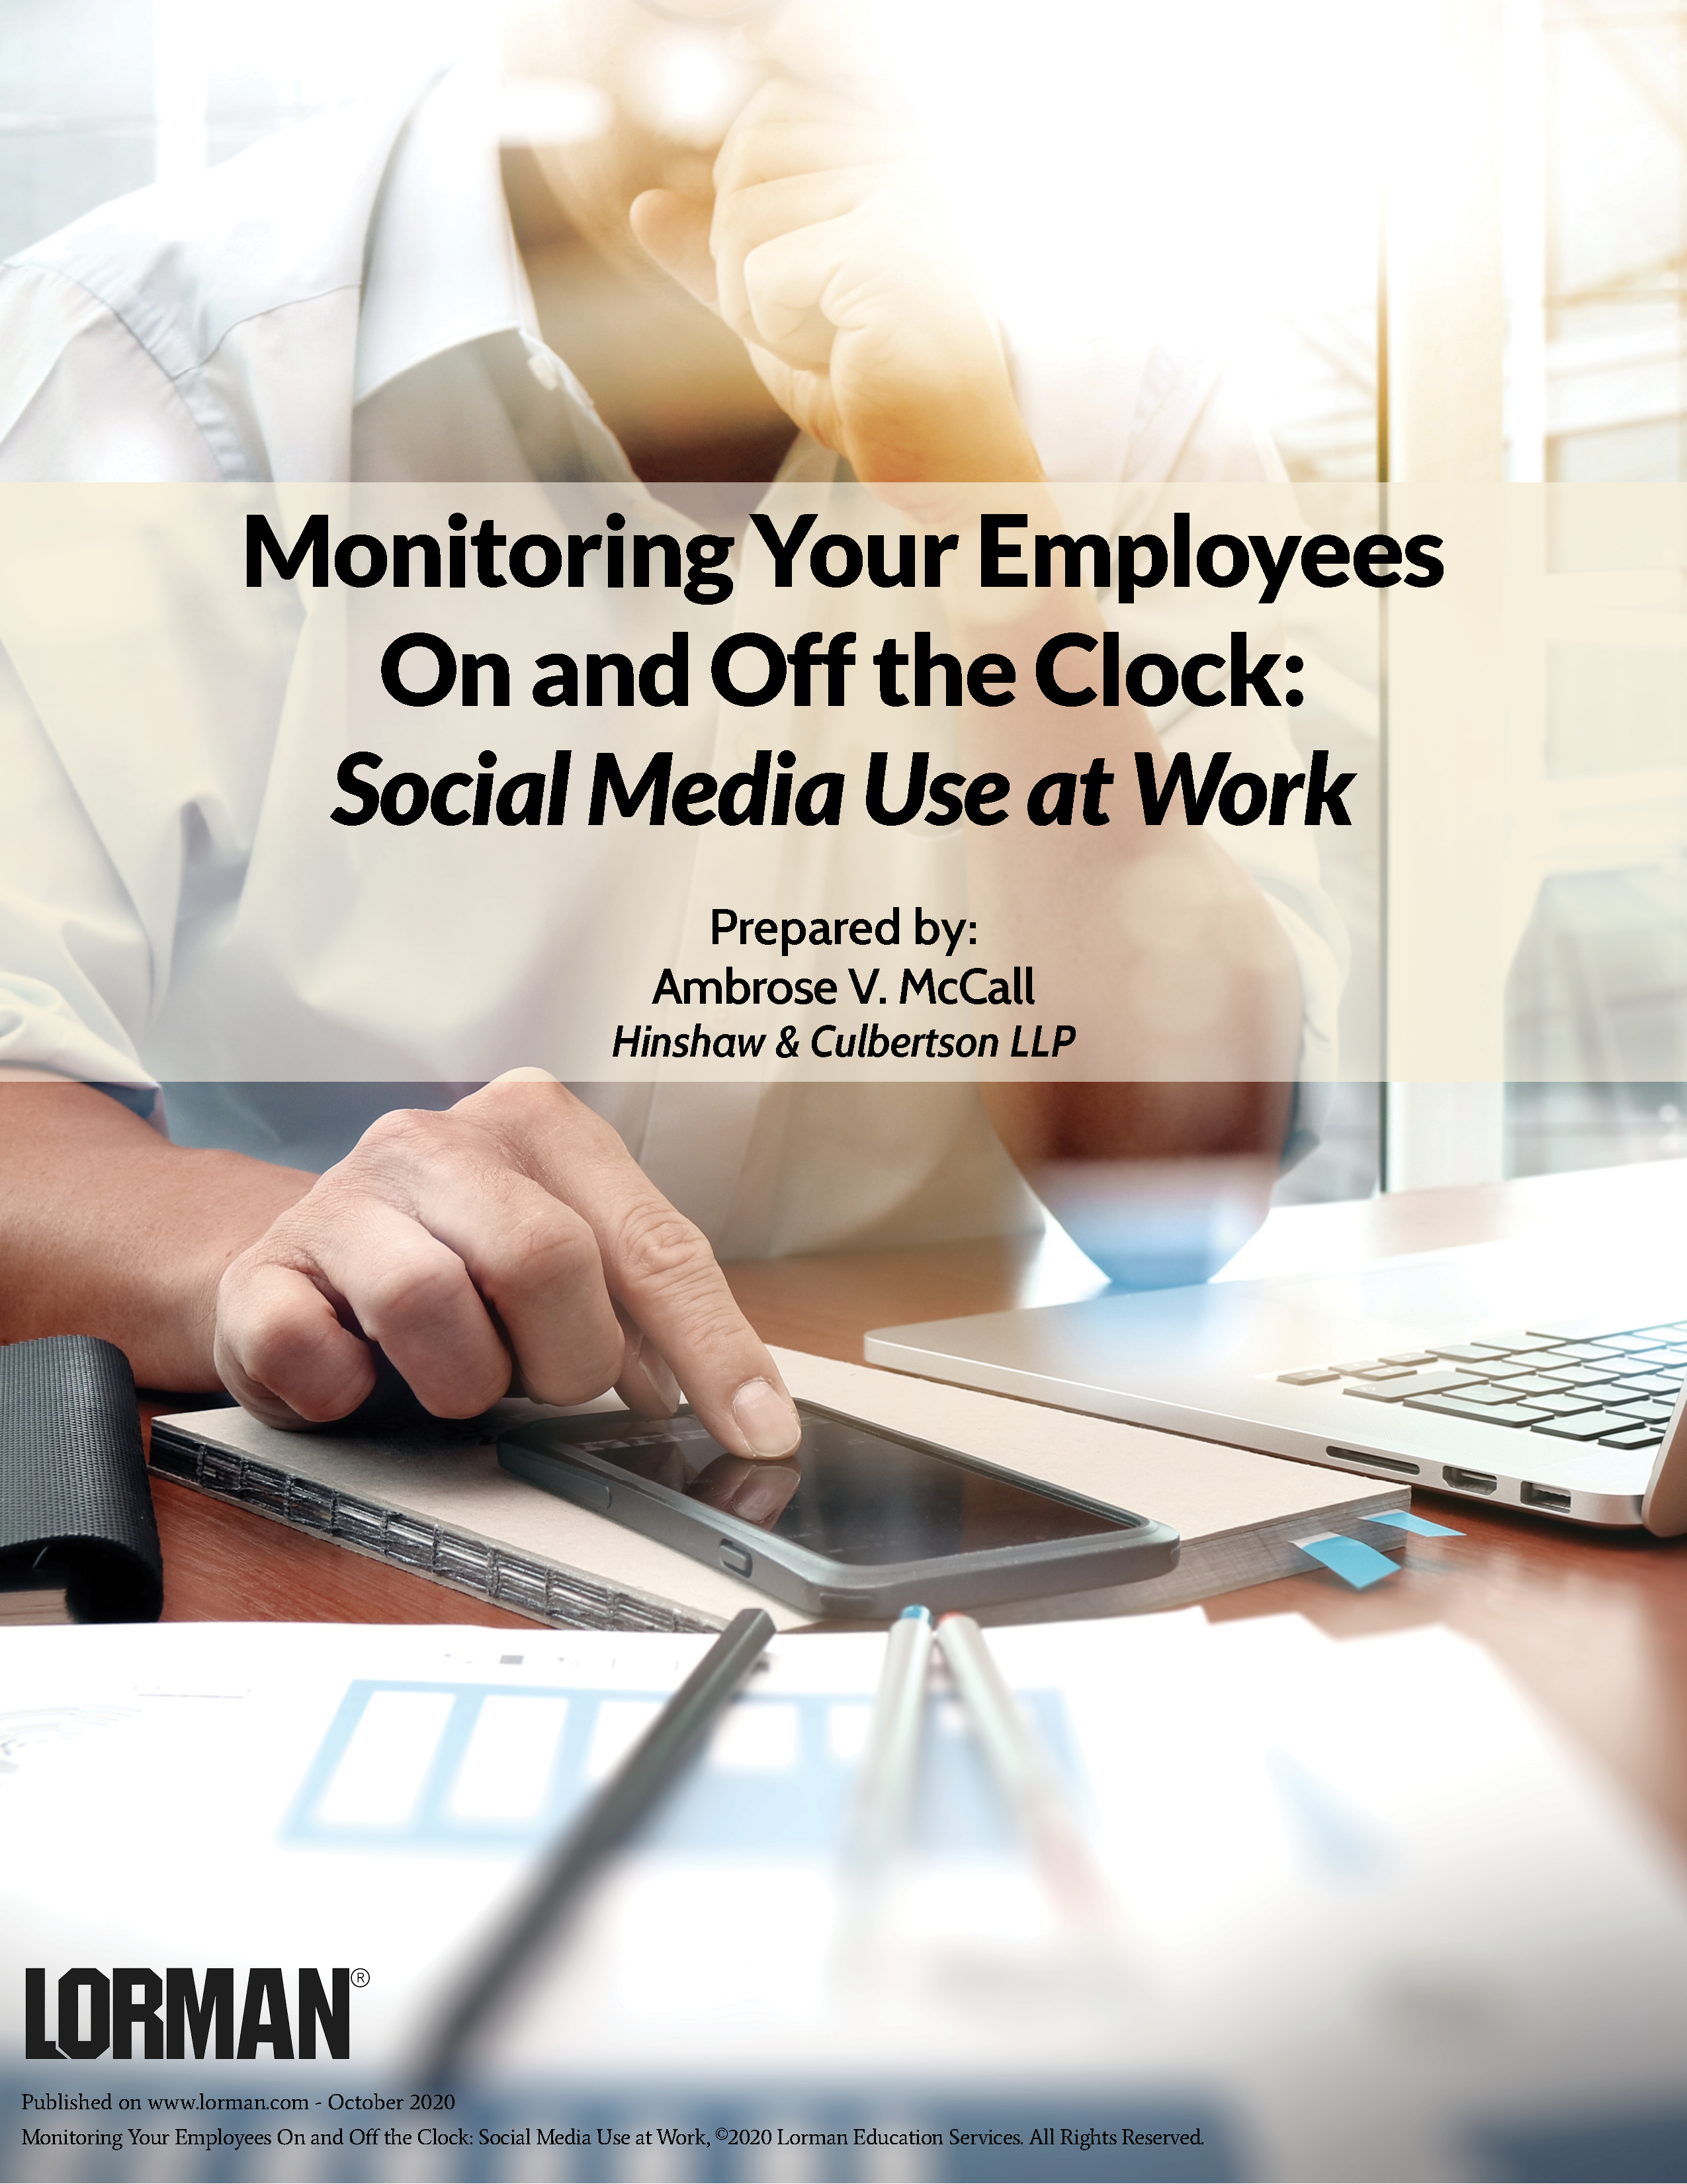 Monitoring Your Employees On and Off the Clock: Social Media Use at Work